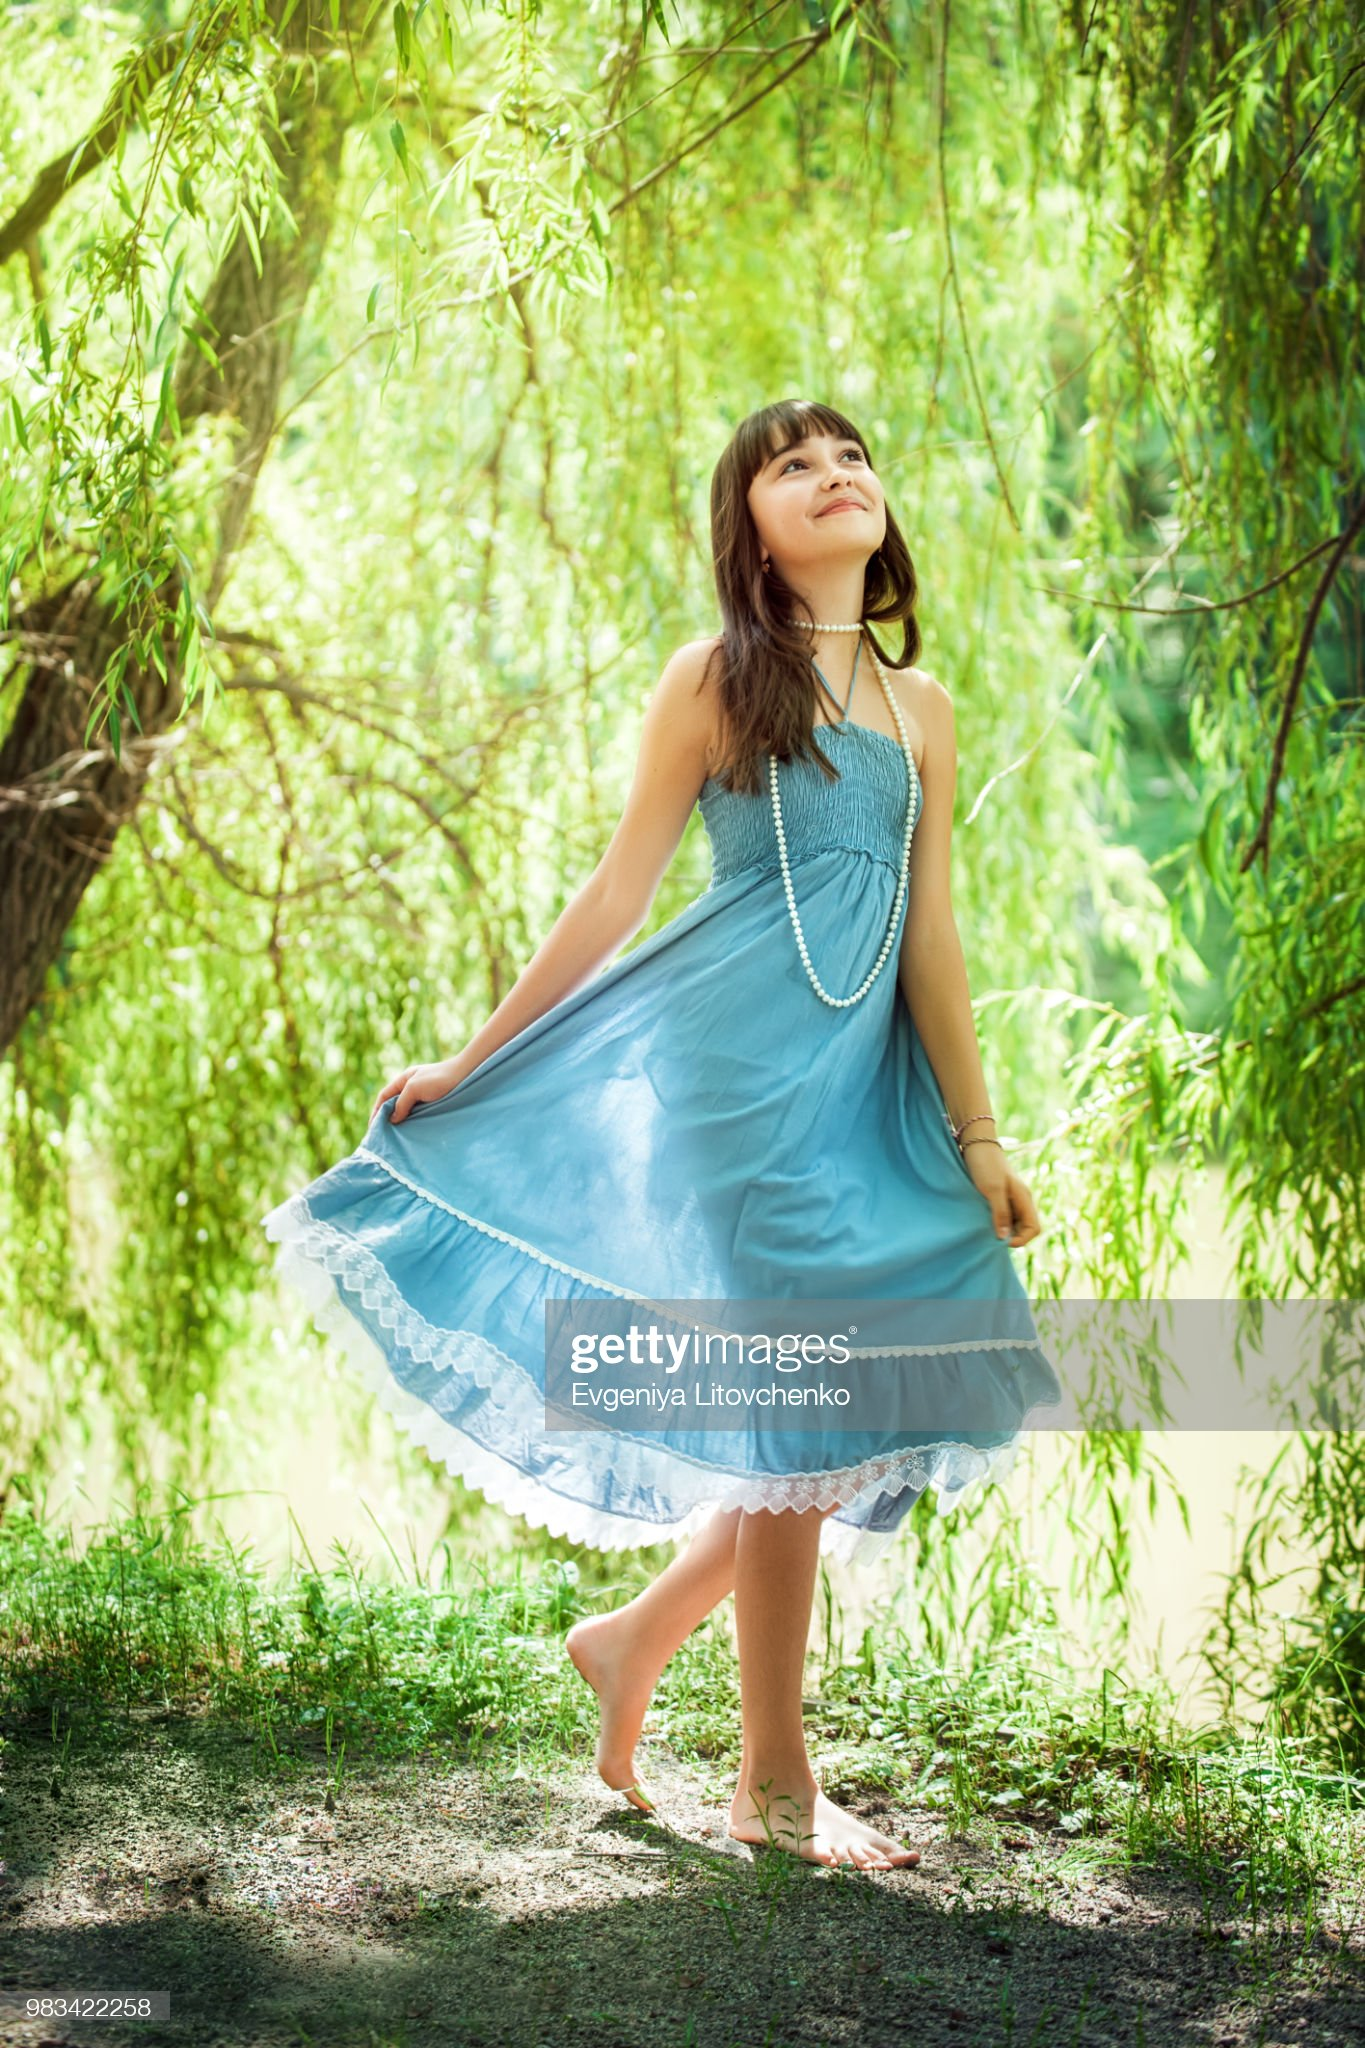 https://media.gettyimages.com/photos/girl-staying-near-a-osier-picture-id983422258?s=2048x2048